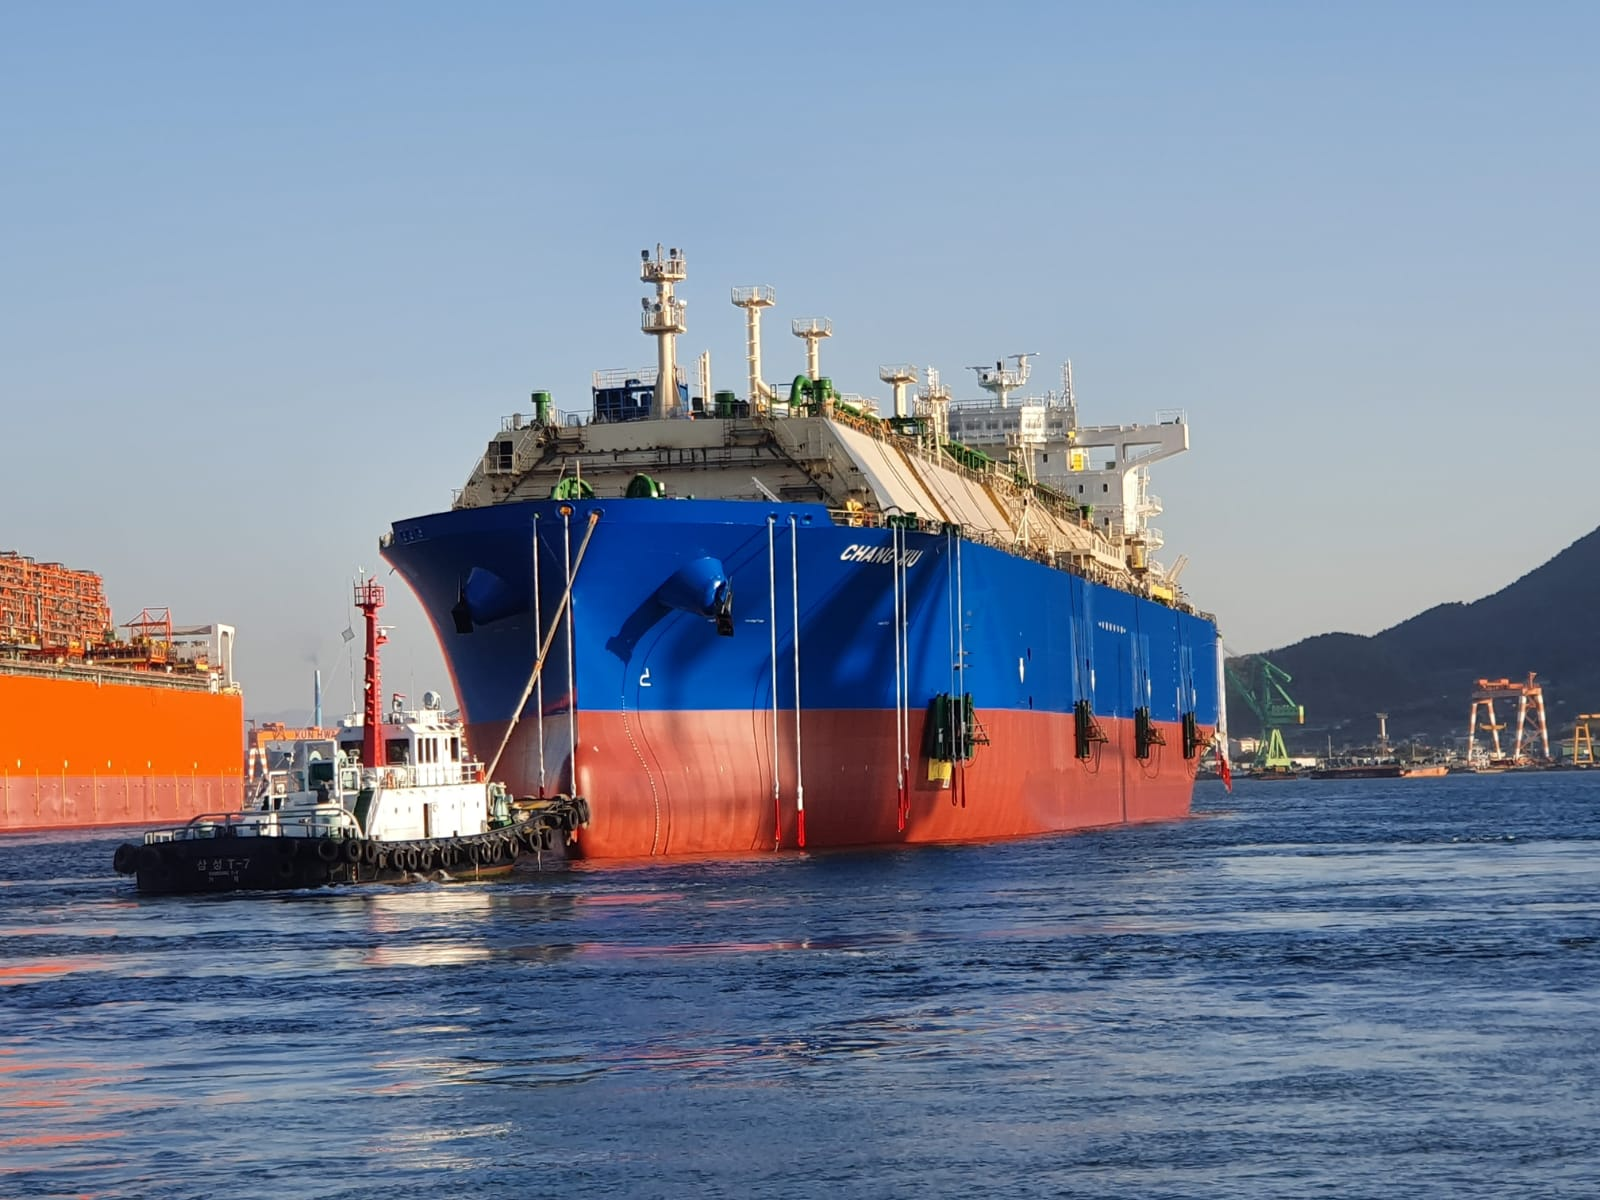 Fleet Management joins hands with GTT to better serve customers in the LNG sector